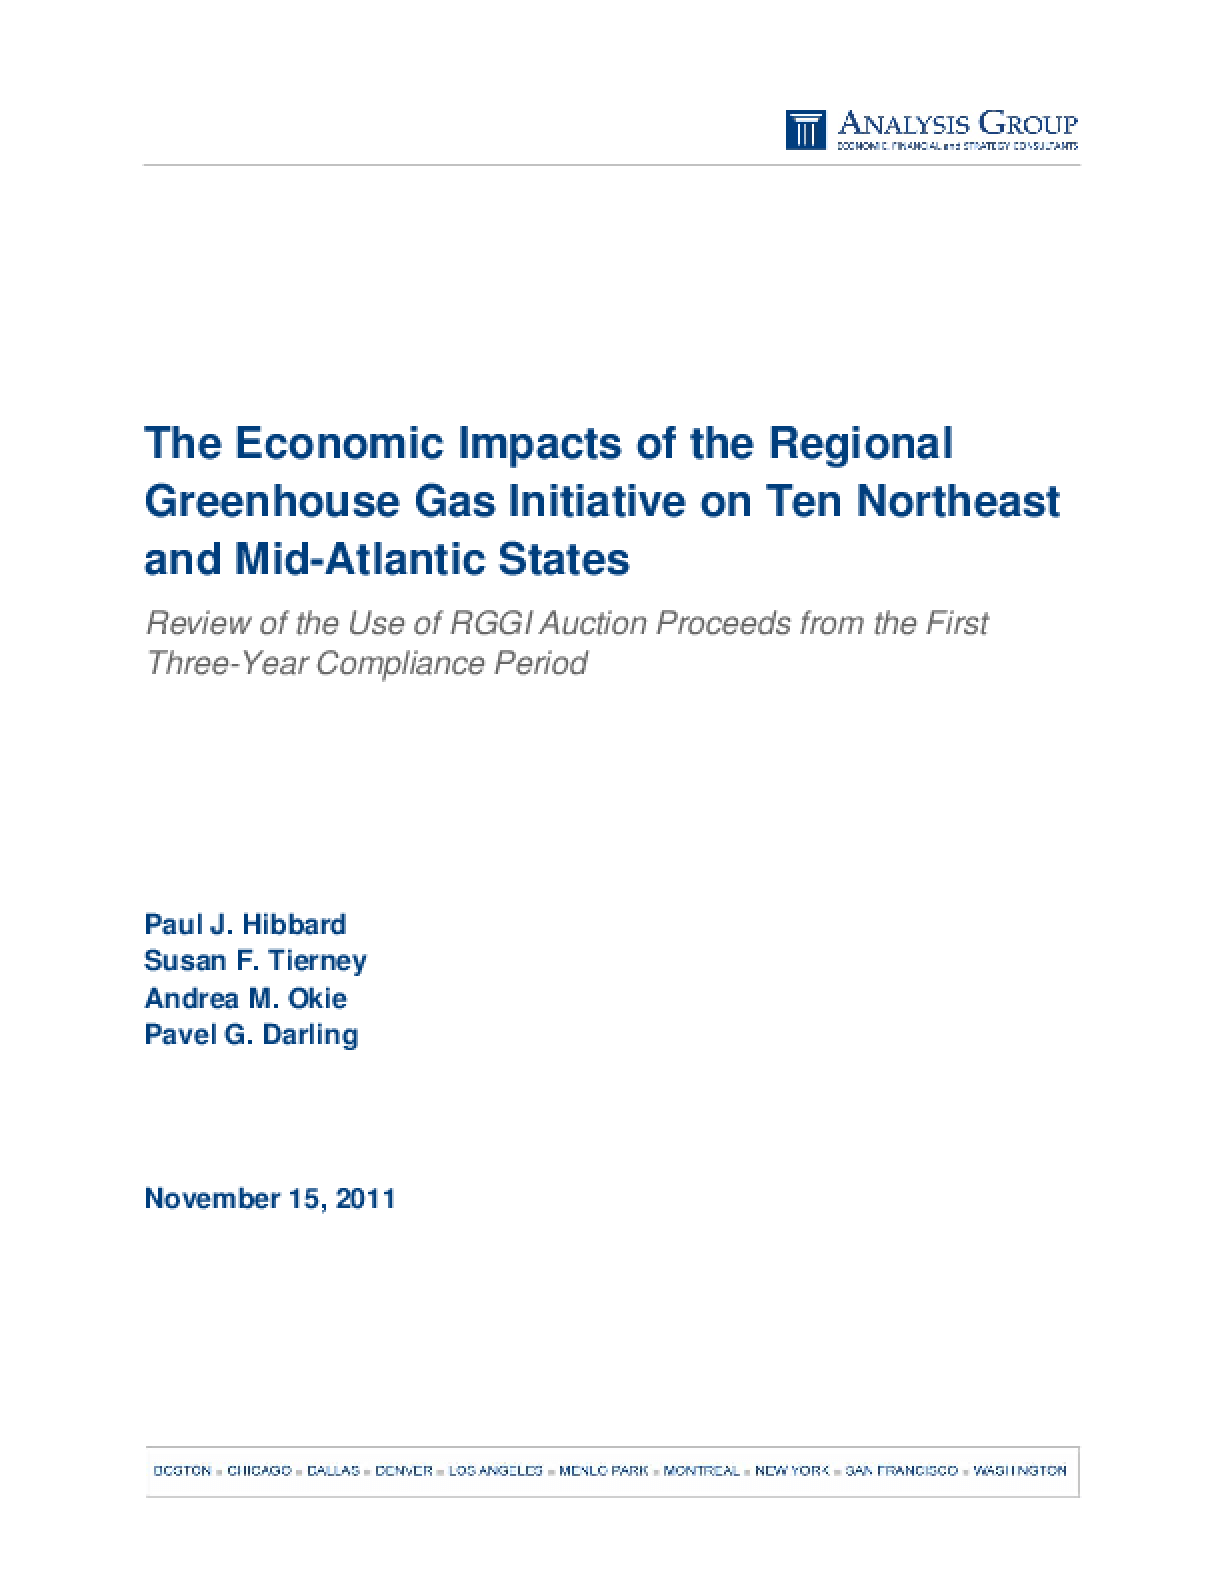 The Economic Impacts of the Regional Greenhouse Gas Initiative on Ten Northeast and Mid-Atlantic States